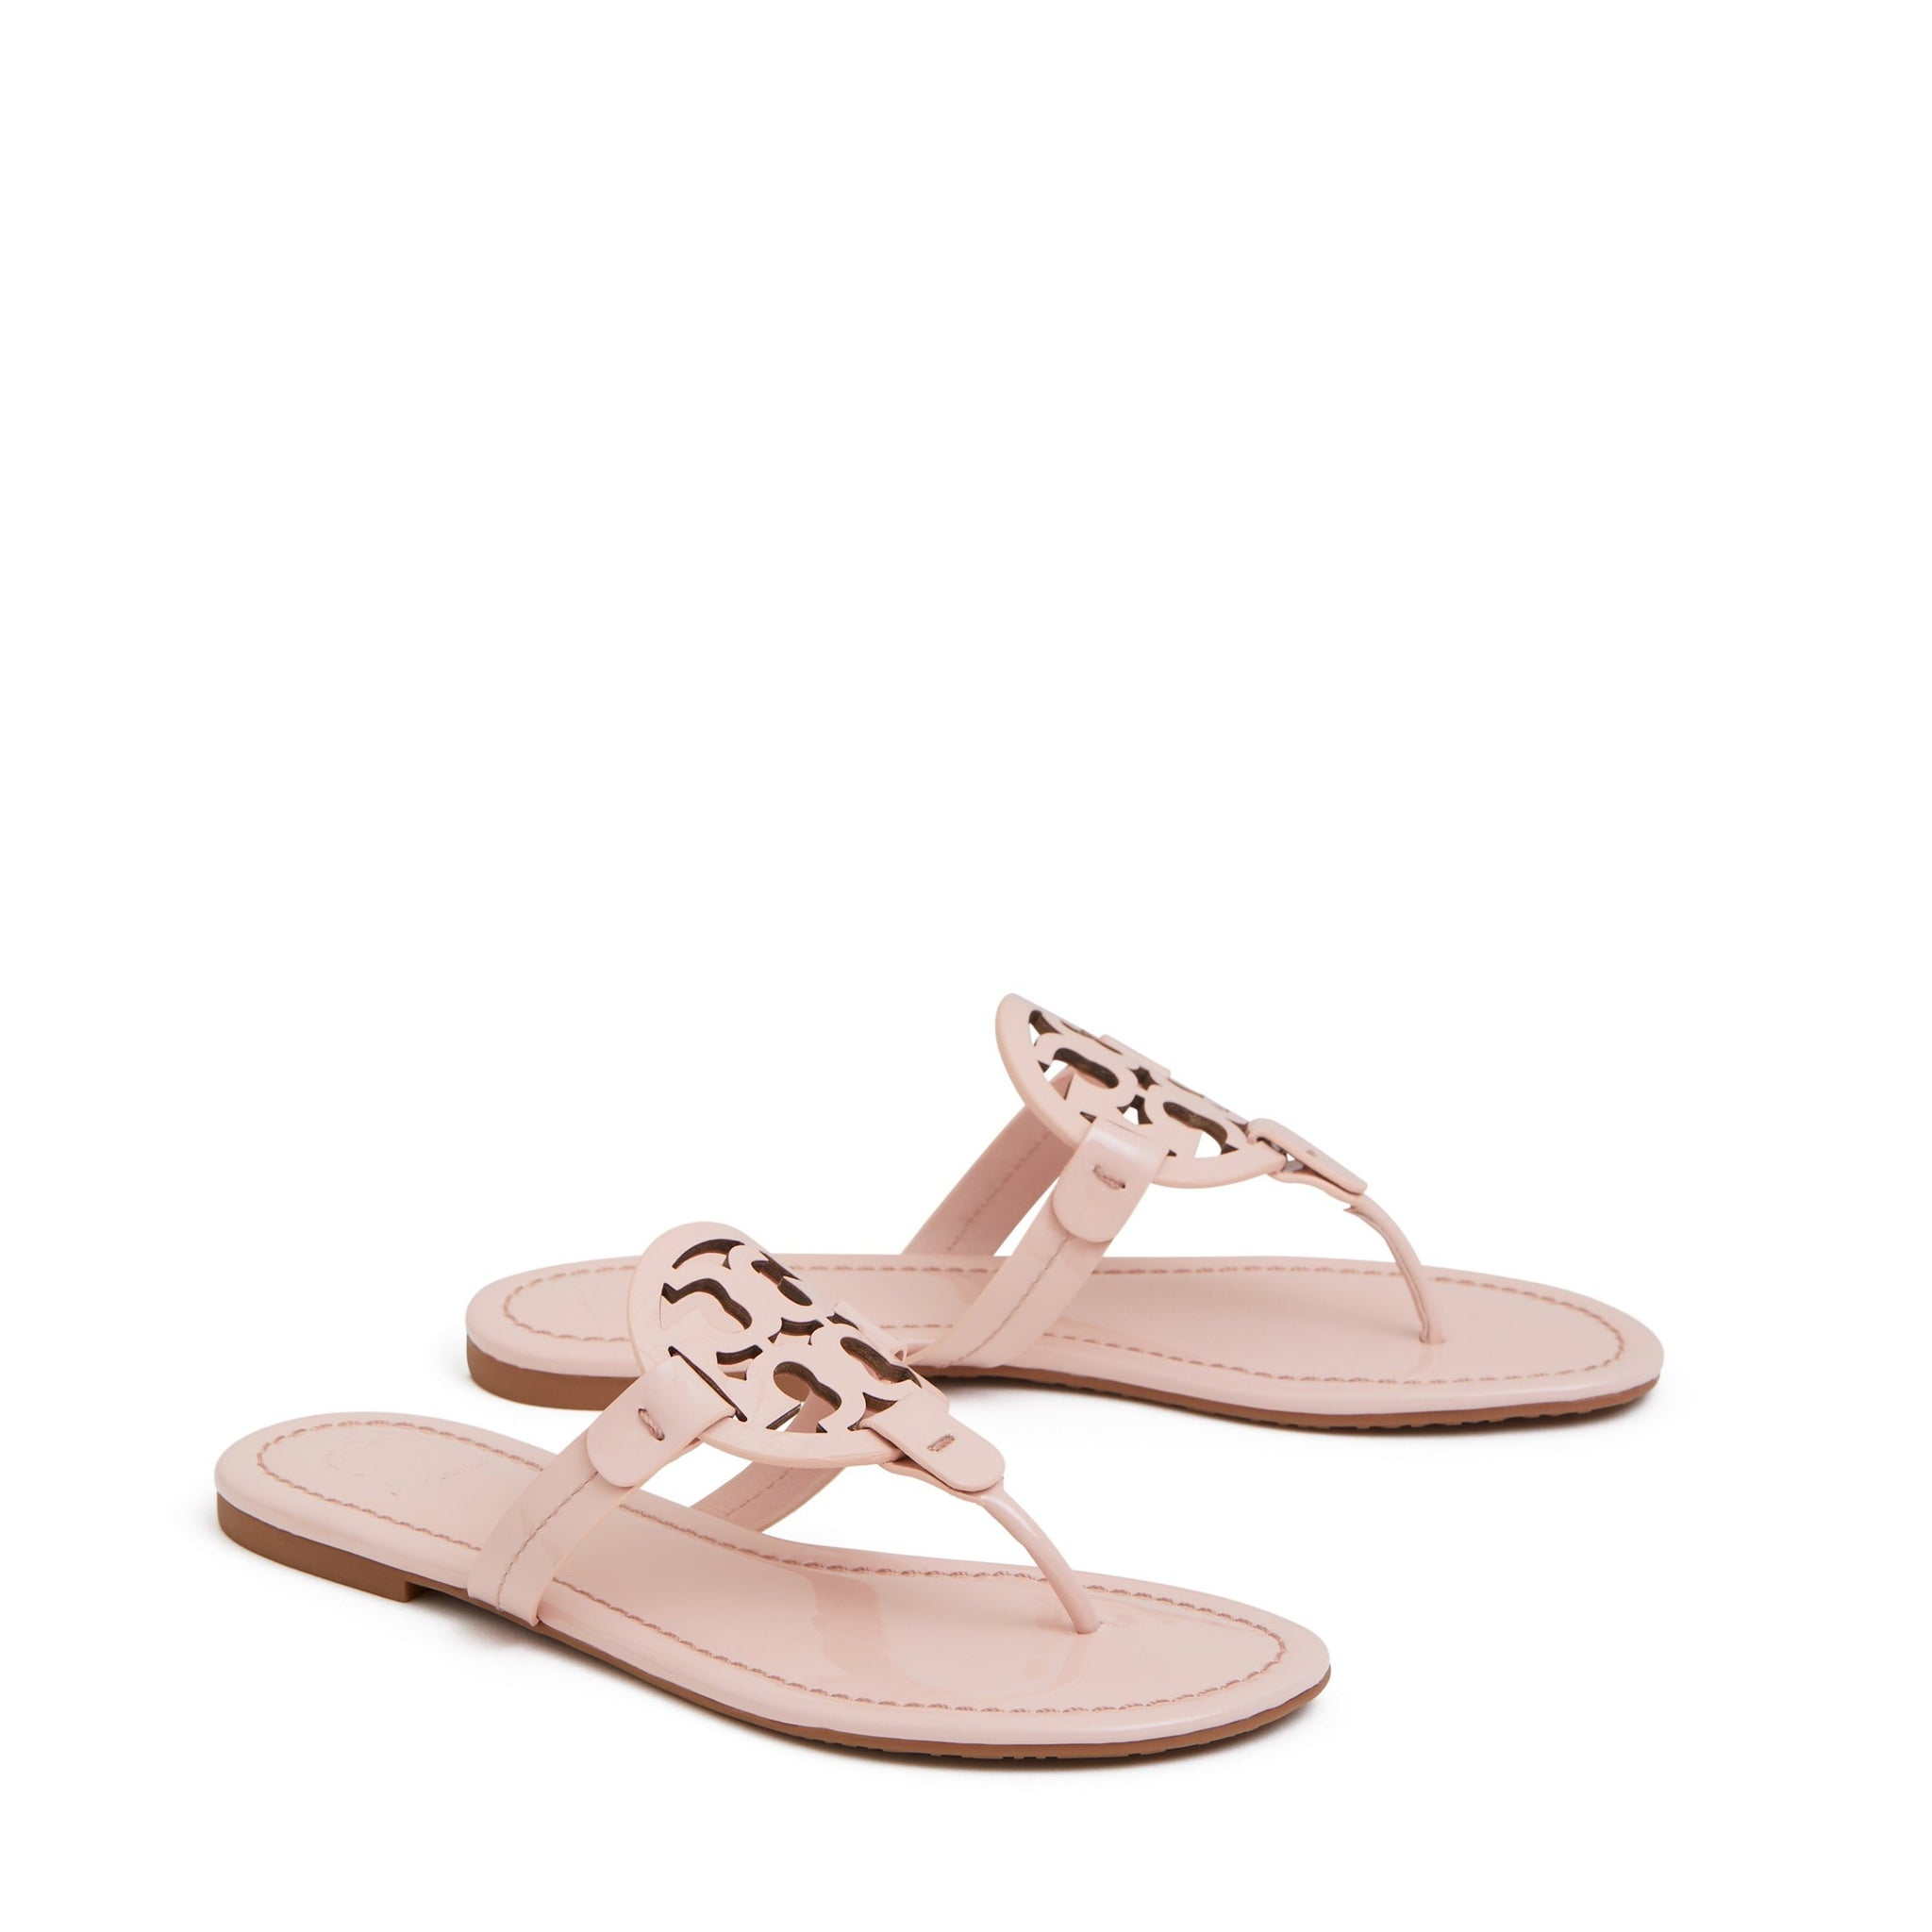 MILLER SANDAL PATENT LEATHER - SEA SHELL PINK